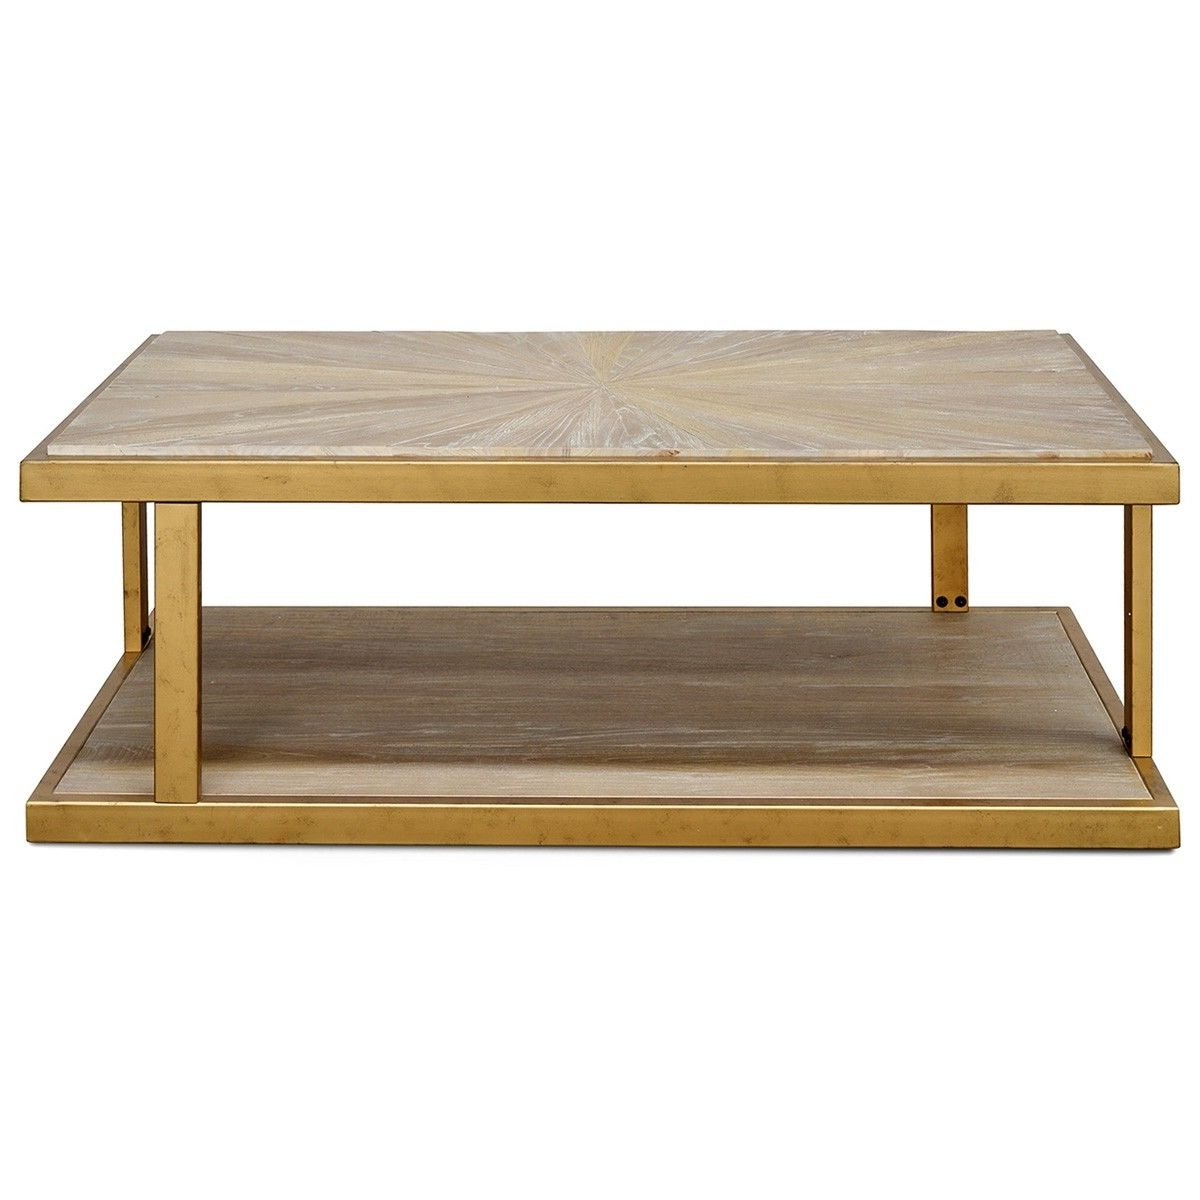 Melina Reclaimed Elm Timber & Iron Coffee Table, 130cm Regarding Well Known Reclaimed Elm Iron Coffee Tables (View 7 of 20)